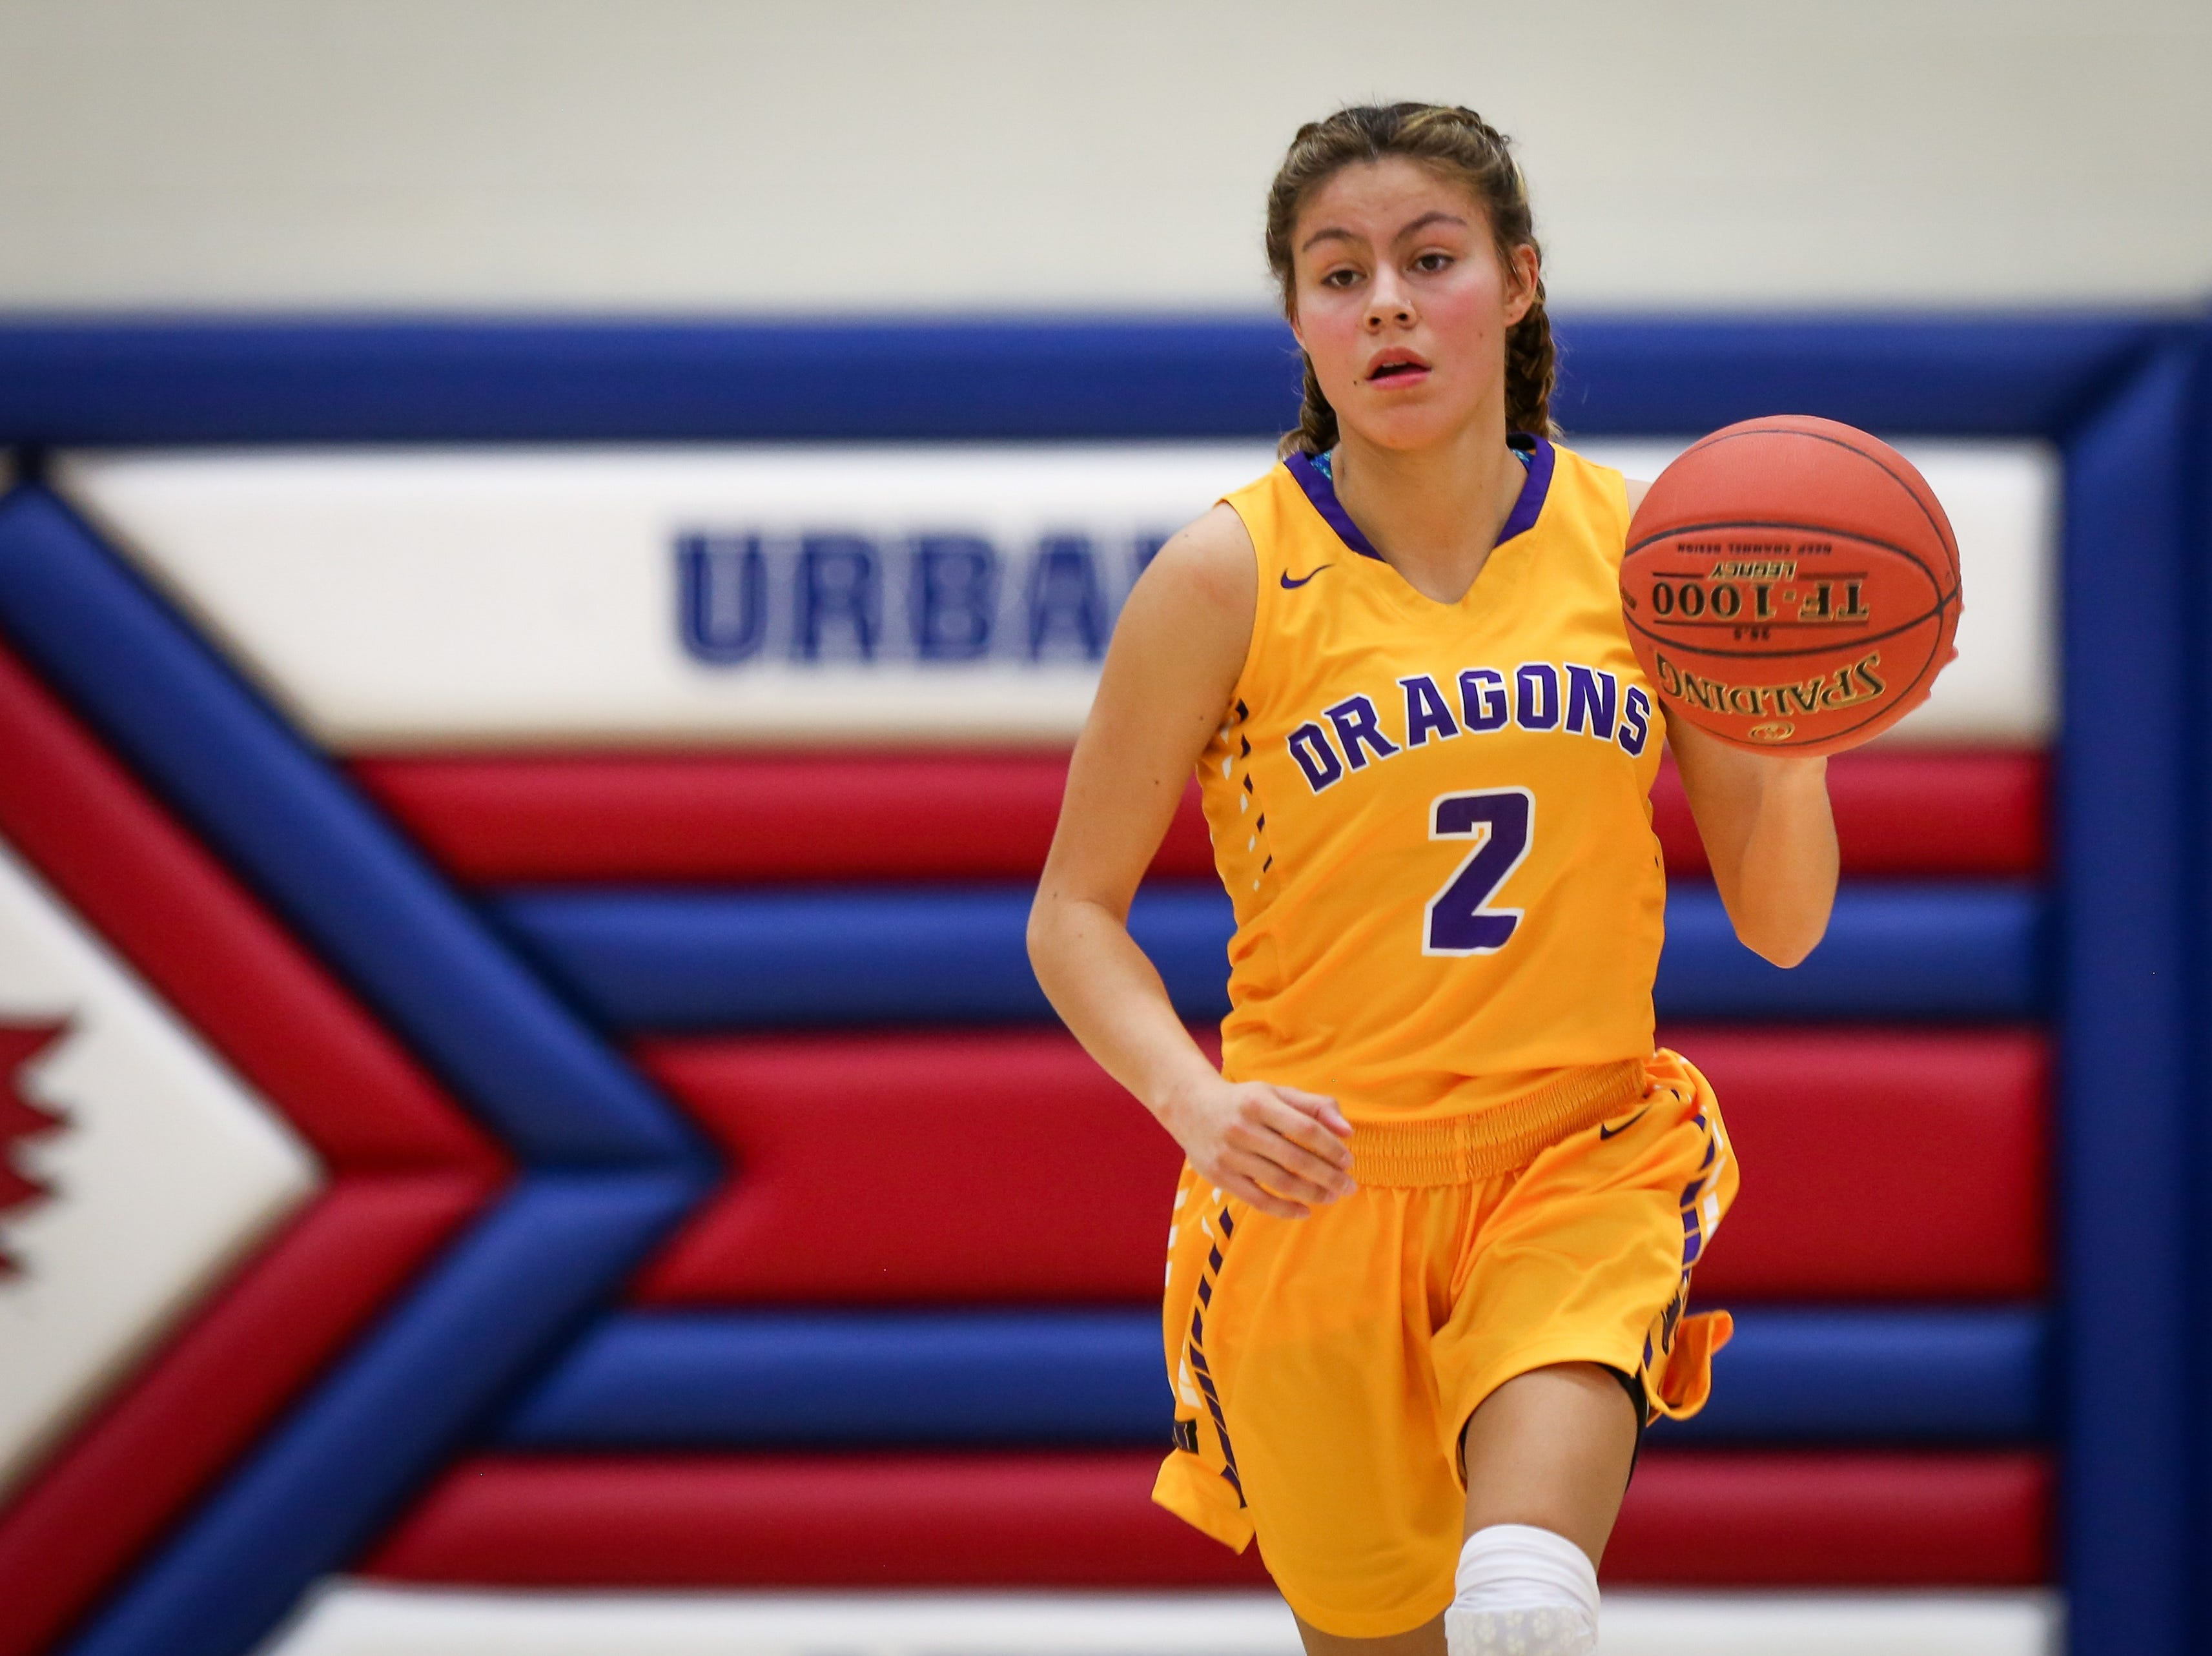 Johnston junior Maya McDermott brings the ball up the court during a girls high school basketball game between the Johnston Dragons and the Urbandale J-Hawks at Urbandale High School on Dec. 18, 2018 in Urbandale, Iowa.